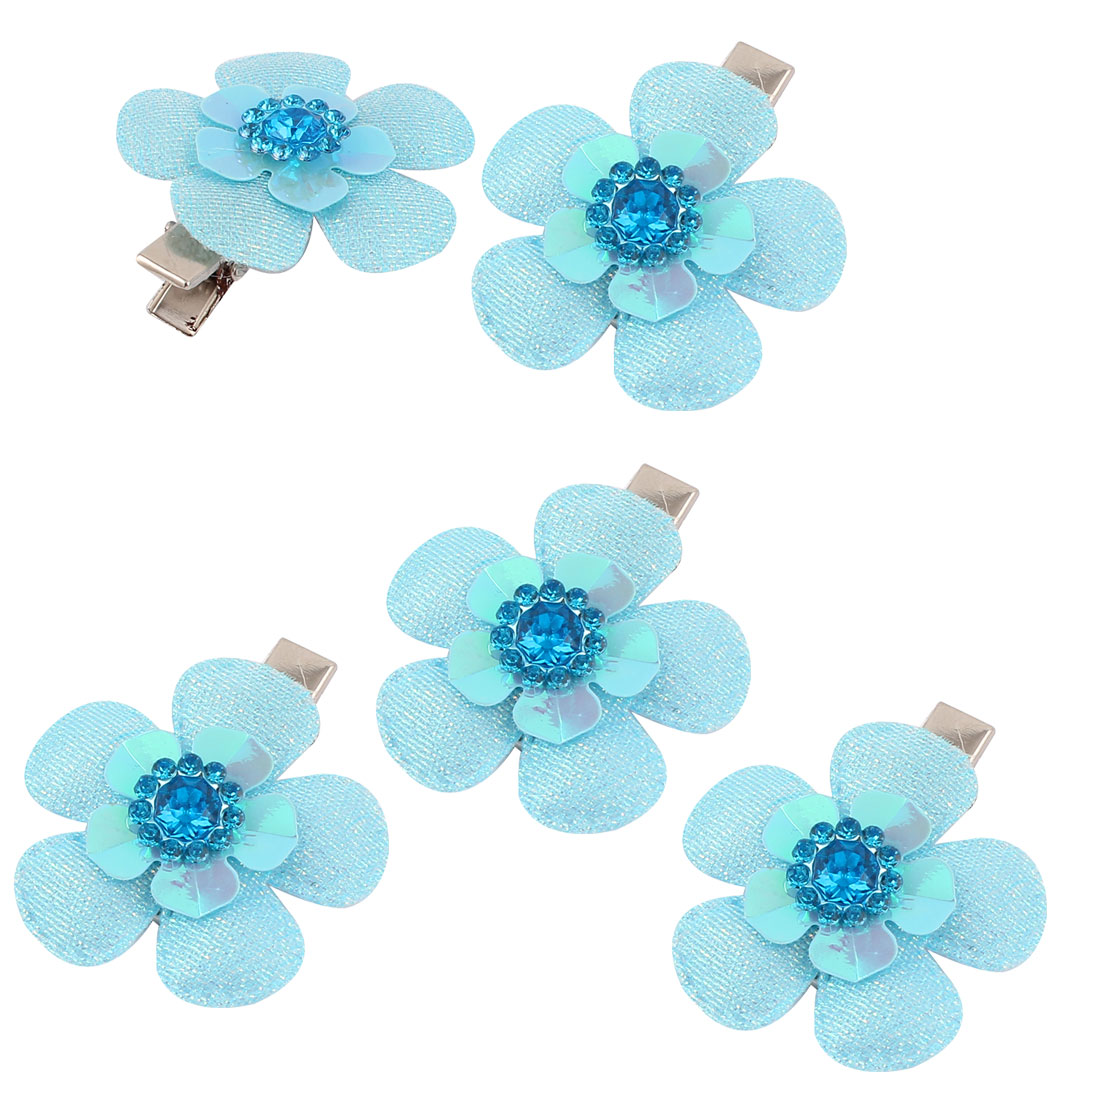 Pet Dog Flower Shaped Hair Grooming Hairpin Headdress Clips 5 Pcs Blue